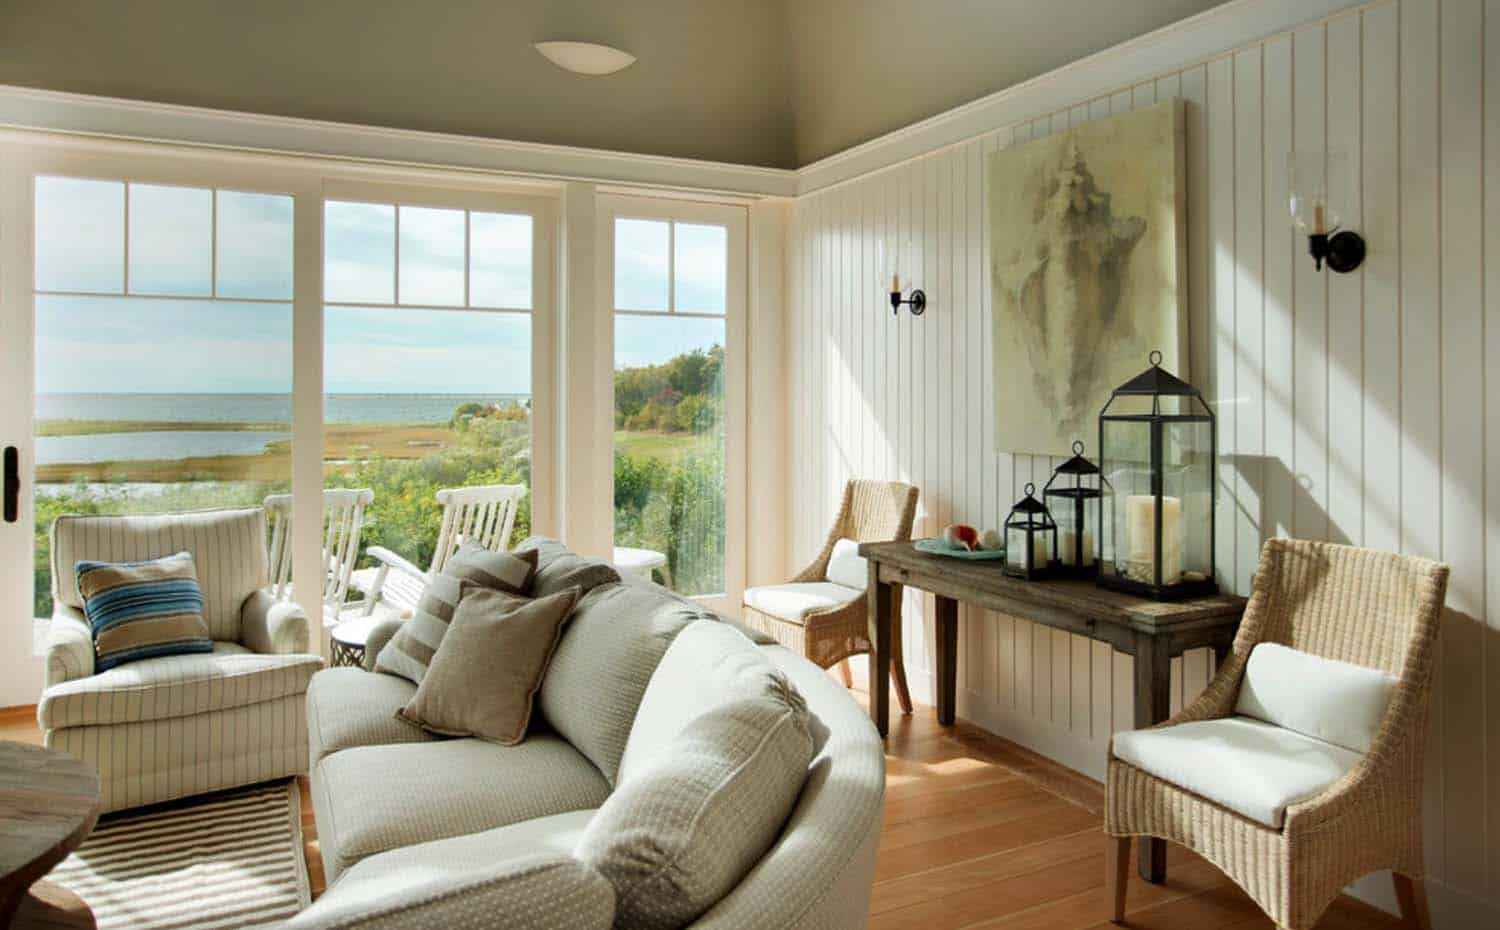 Beach House-Marthas Vineyard Interior Design-02-1 Kindesign